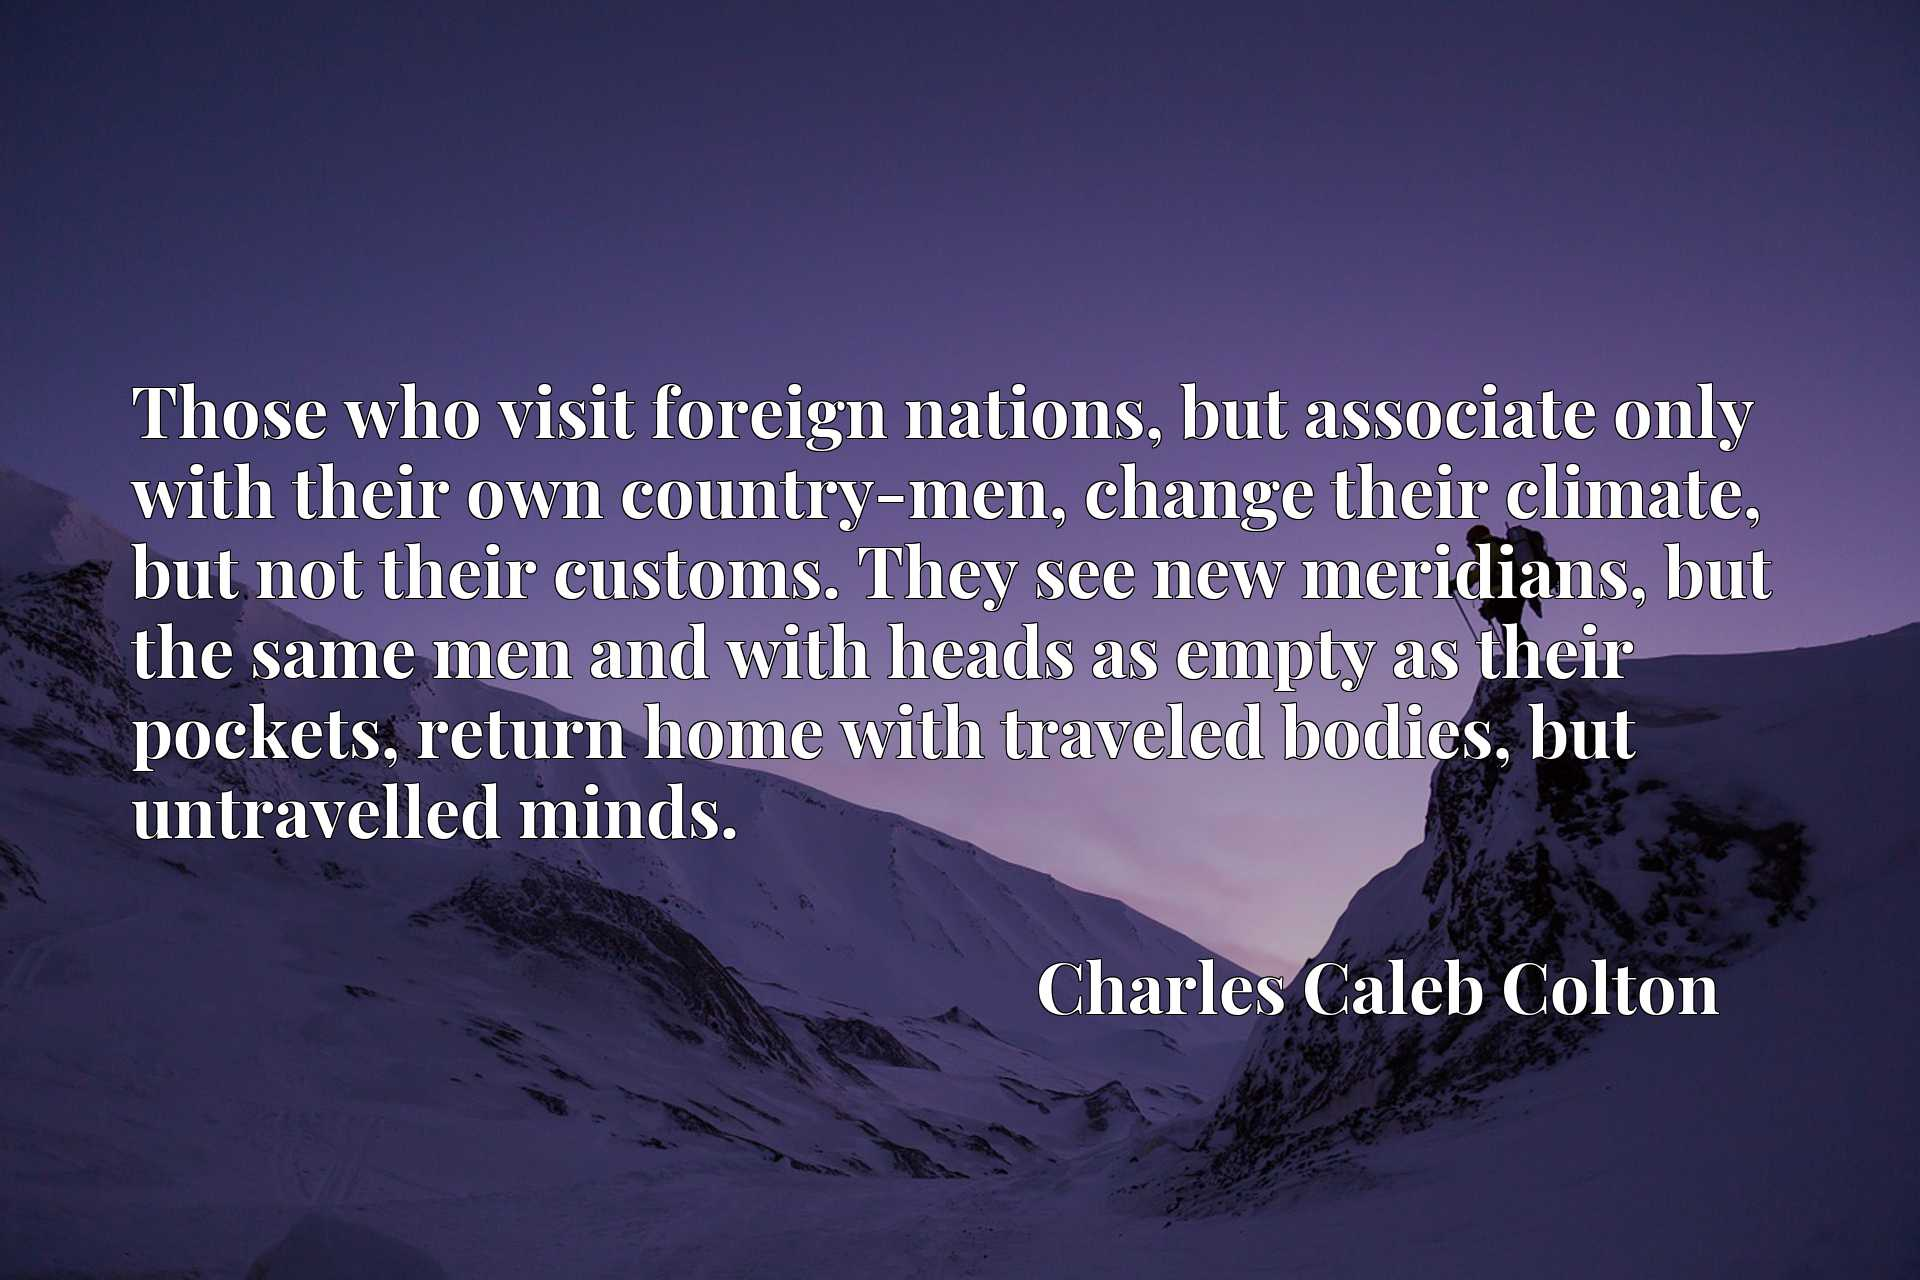 Those who visit foreign nations, but associate only with their own country-men, change their climate, but not their customs. They see new meridians, but the same men and with heads as empty as their pockets, return home with traveled bodies, but untravelled minds.